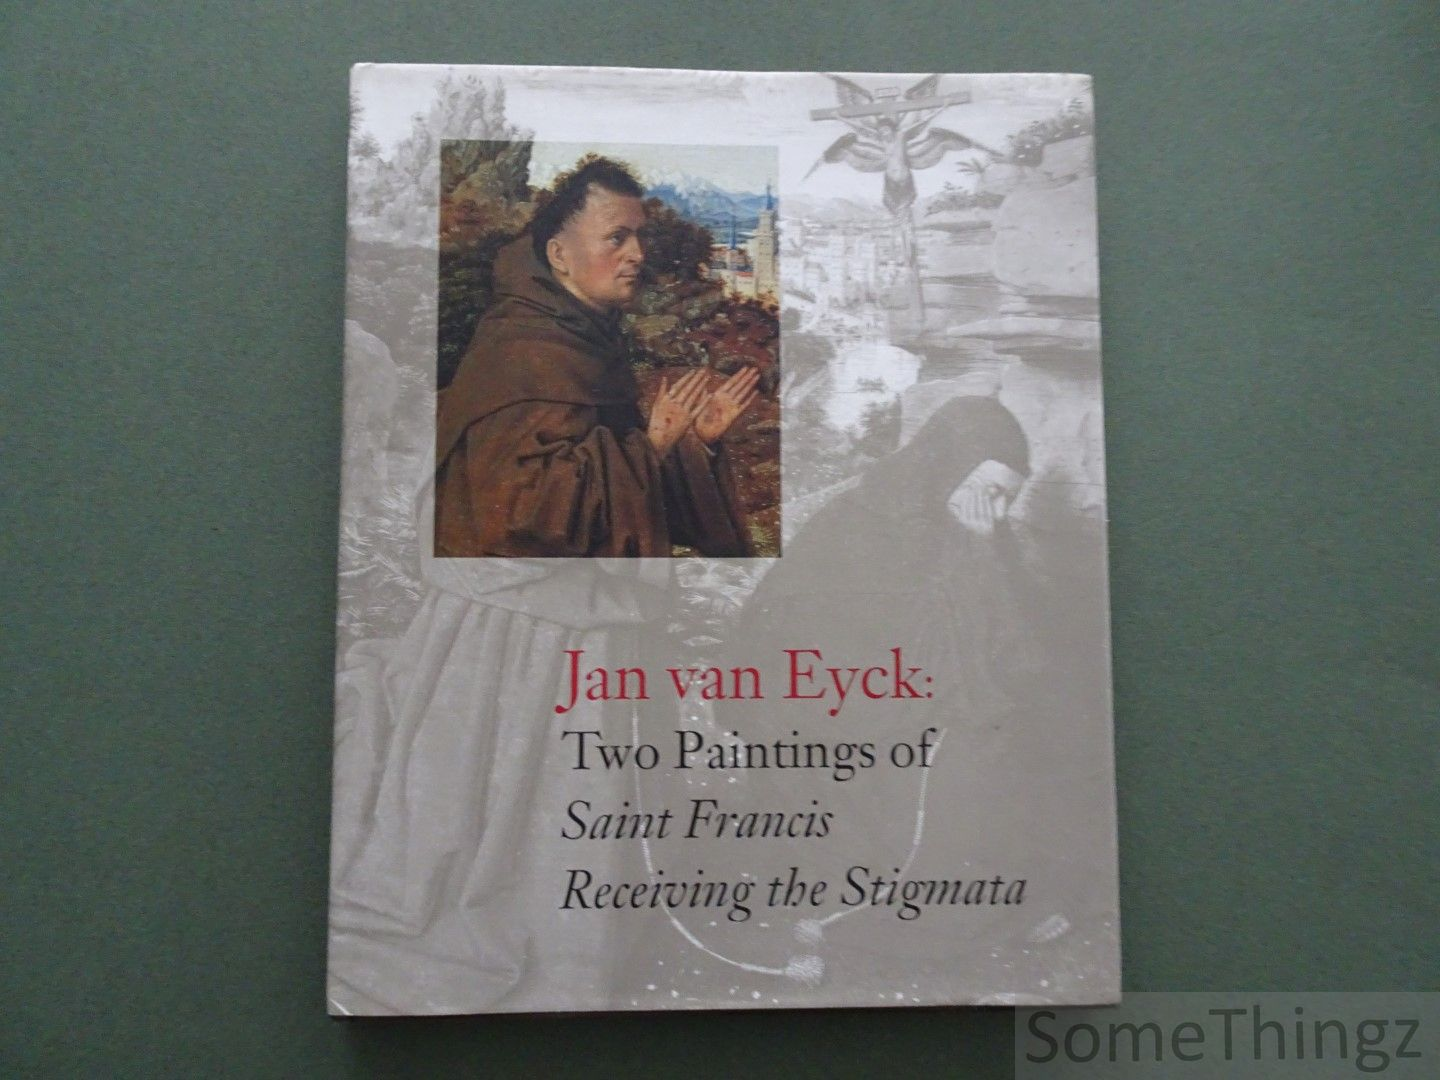 D'Harnoncourt, Anne/Joseph J. Rishel/Carlenrica Spantigati/Marigene H. Butler/Peter Klein/J.R. J Van Asperen De Boer/Maurits... - Jan Van Eyck: Two Paintings of Saint Francis Receiving the Stigmata.